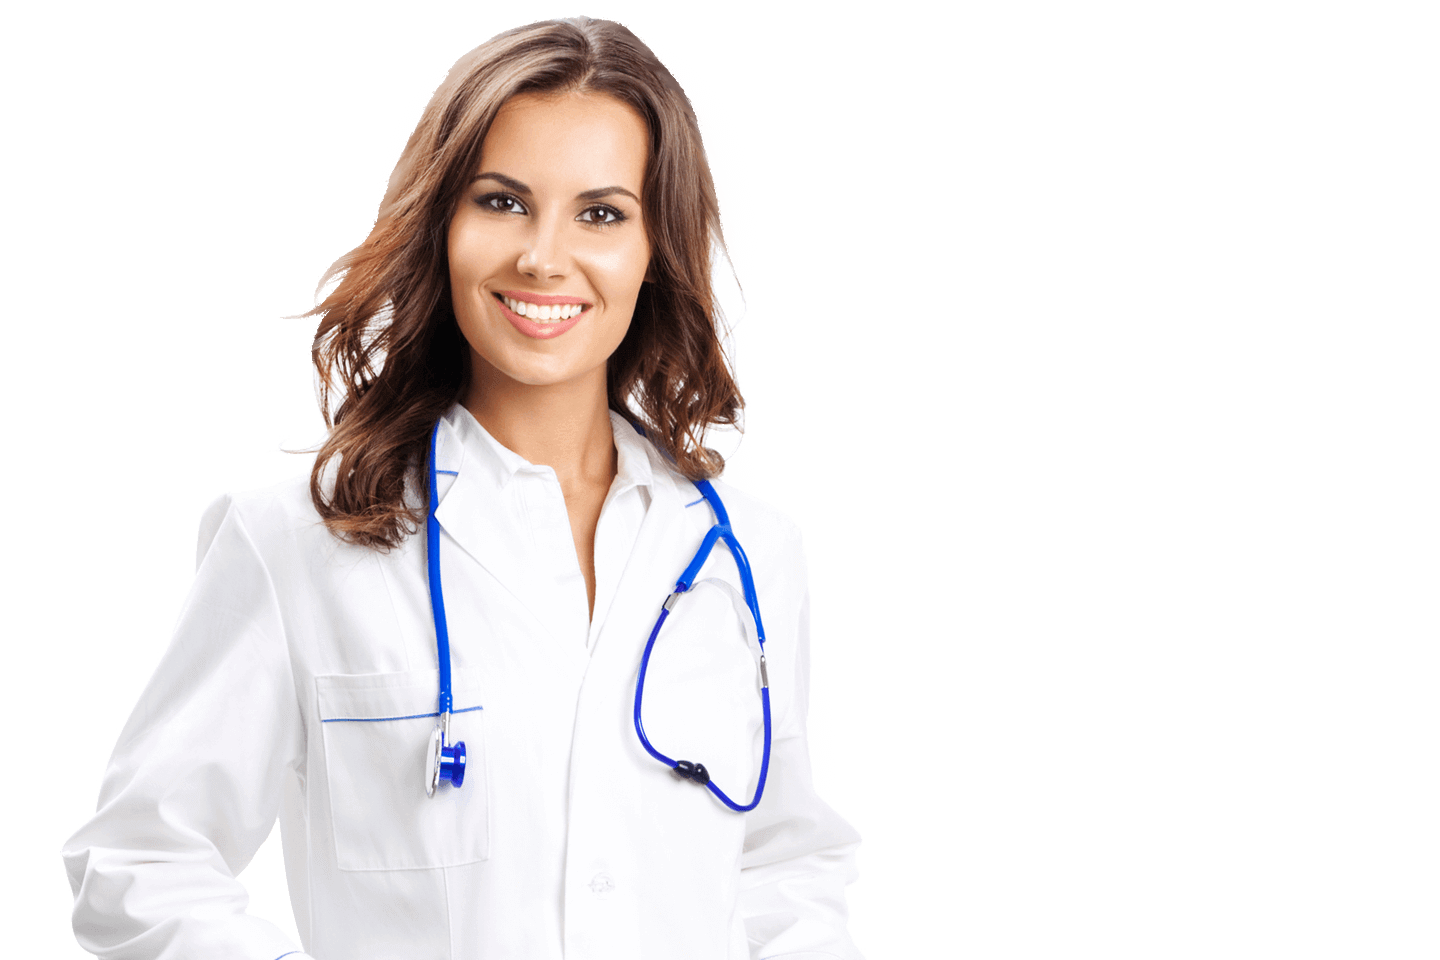 Independent Multispecialty Group of Florida